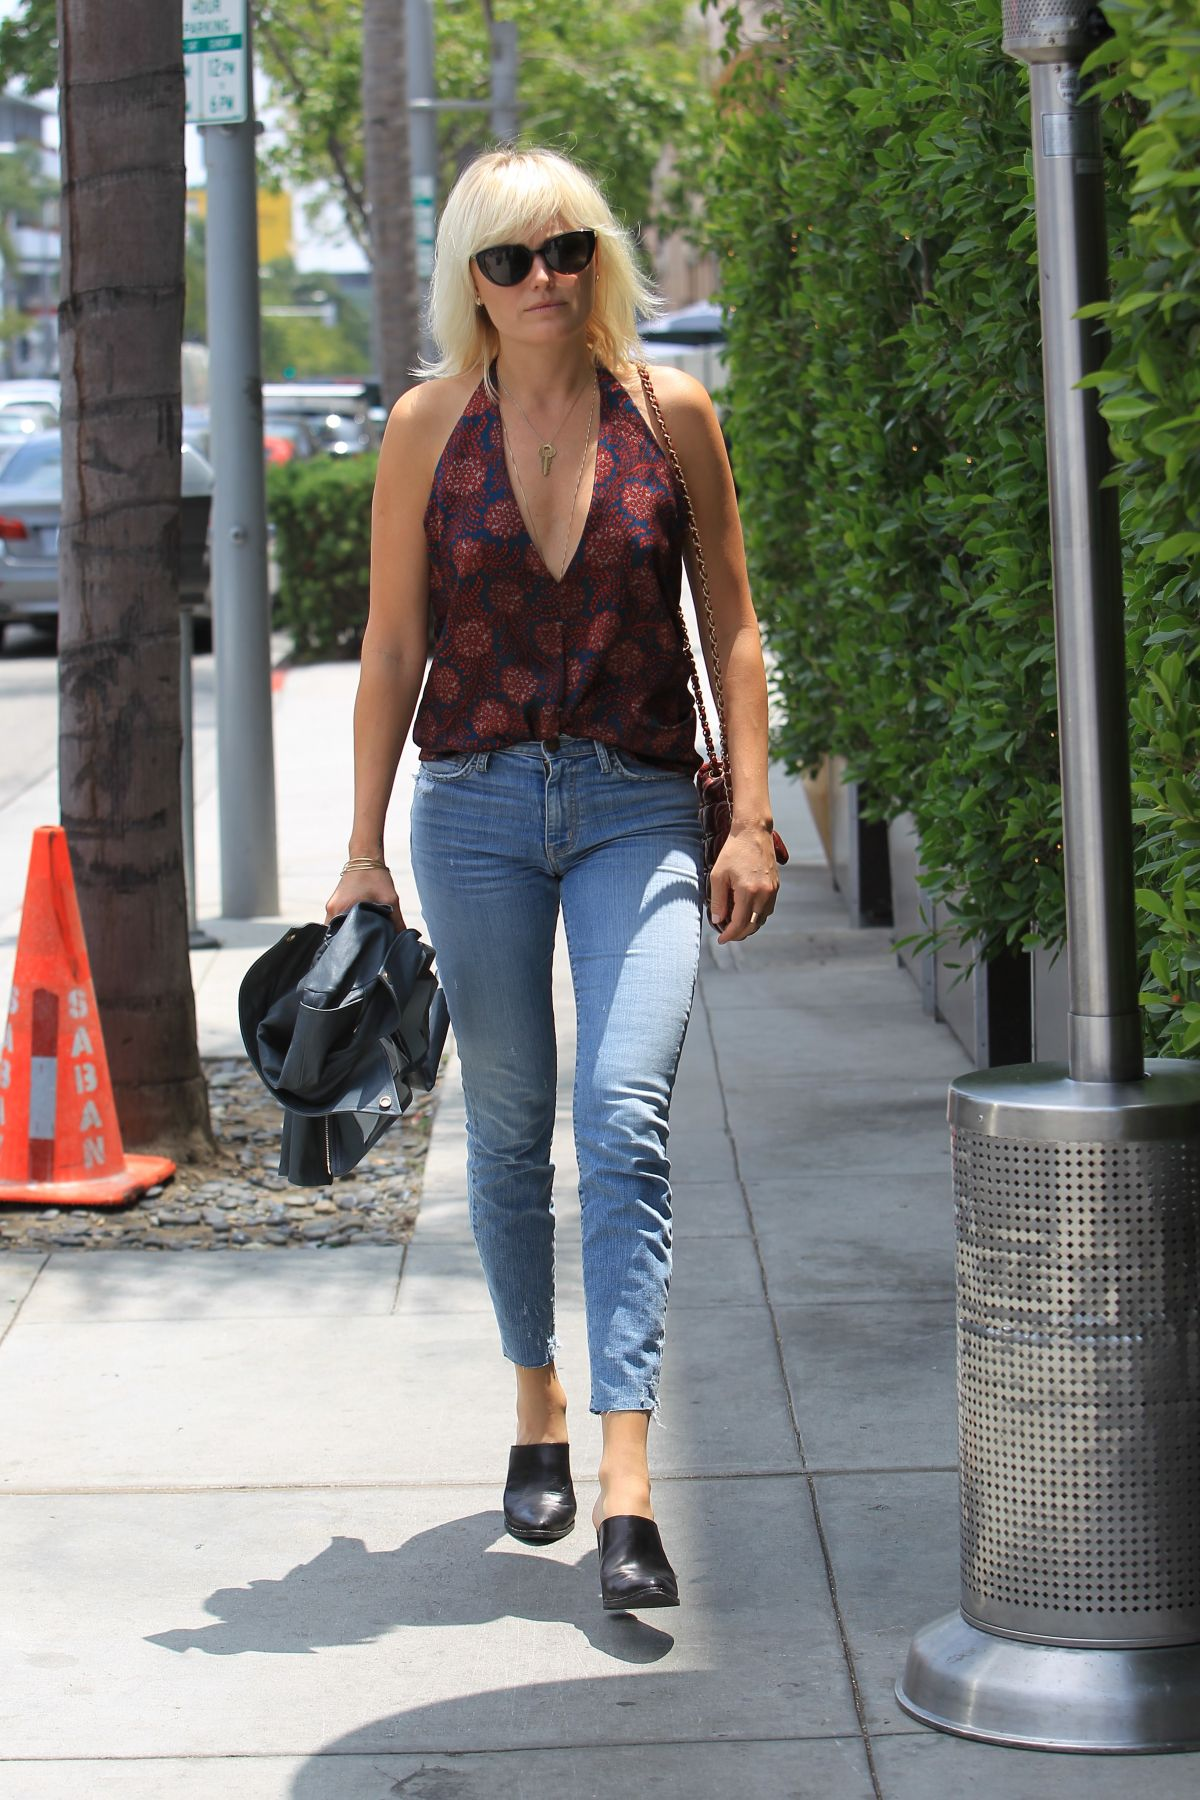 MALIN AKERMAN Out and About in Beverly HIlls 06/01/2017